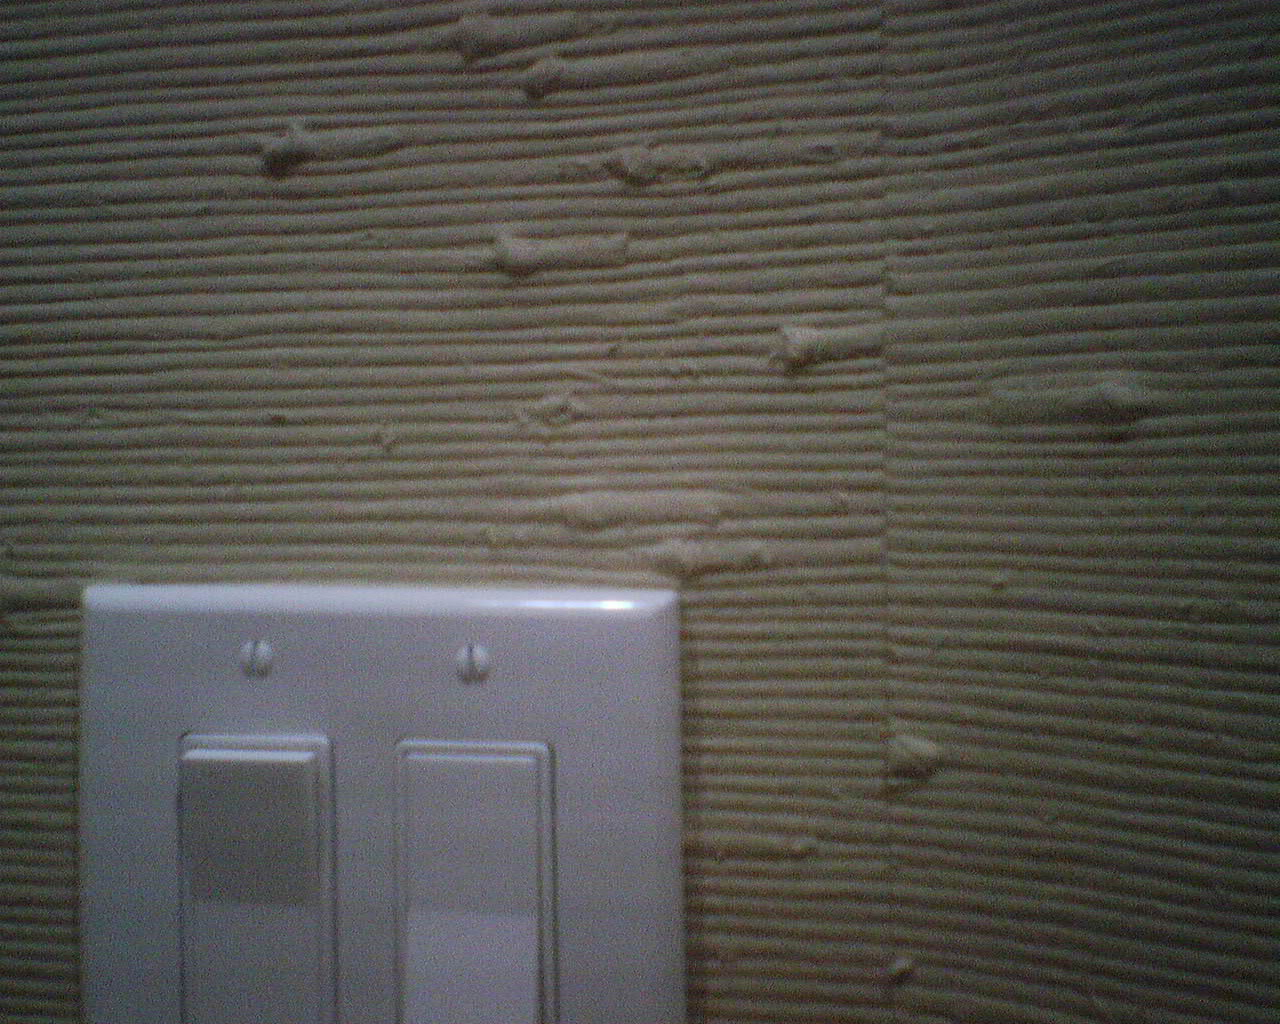 Painting grasscloth is not a good idea wallpaperlady 39 s blog for Paintable grasscloth wallpaper